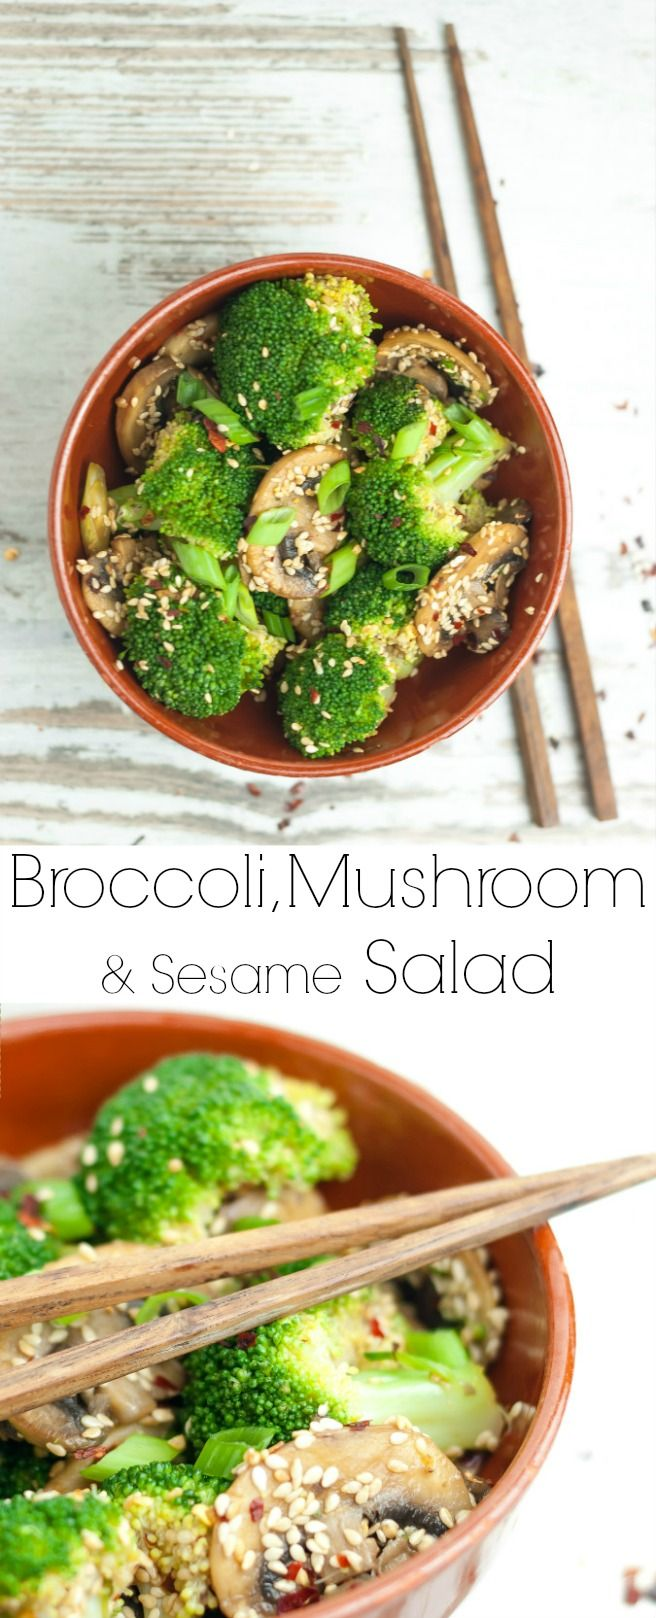 This broccoli, mushroom and sesame salad is like a journey: crunchy broccoli meets soft and buttery mushrooms, then the nuttiness of the sesame hits you which paired with a slight tartness from the vinegar provides a perfect combo, then all of this is to